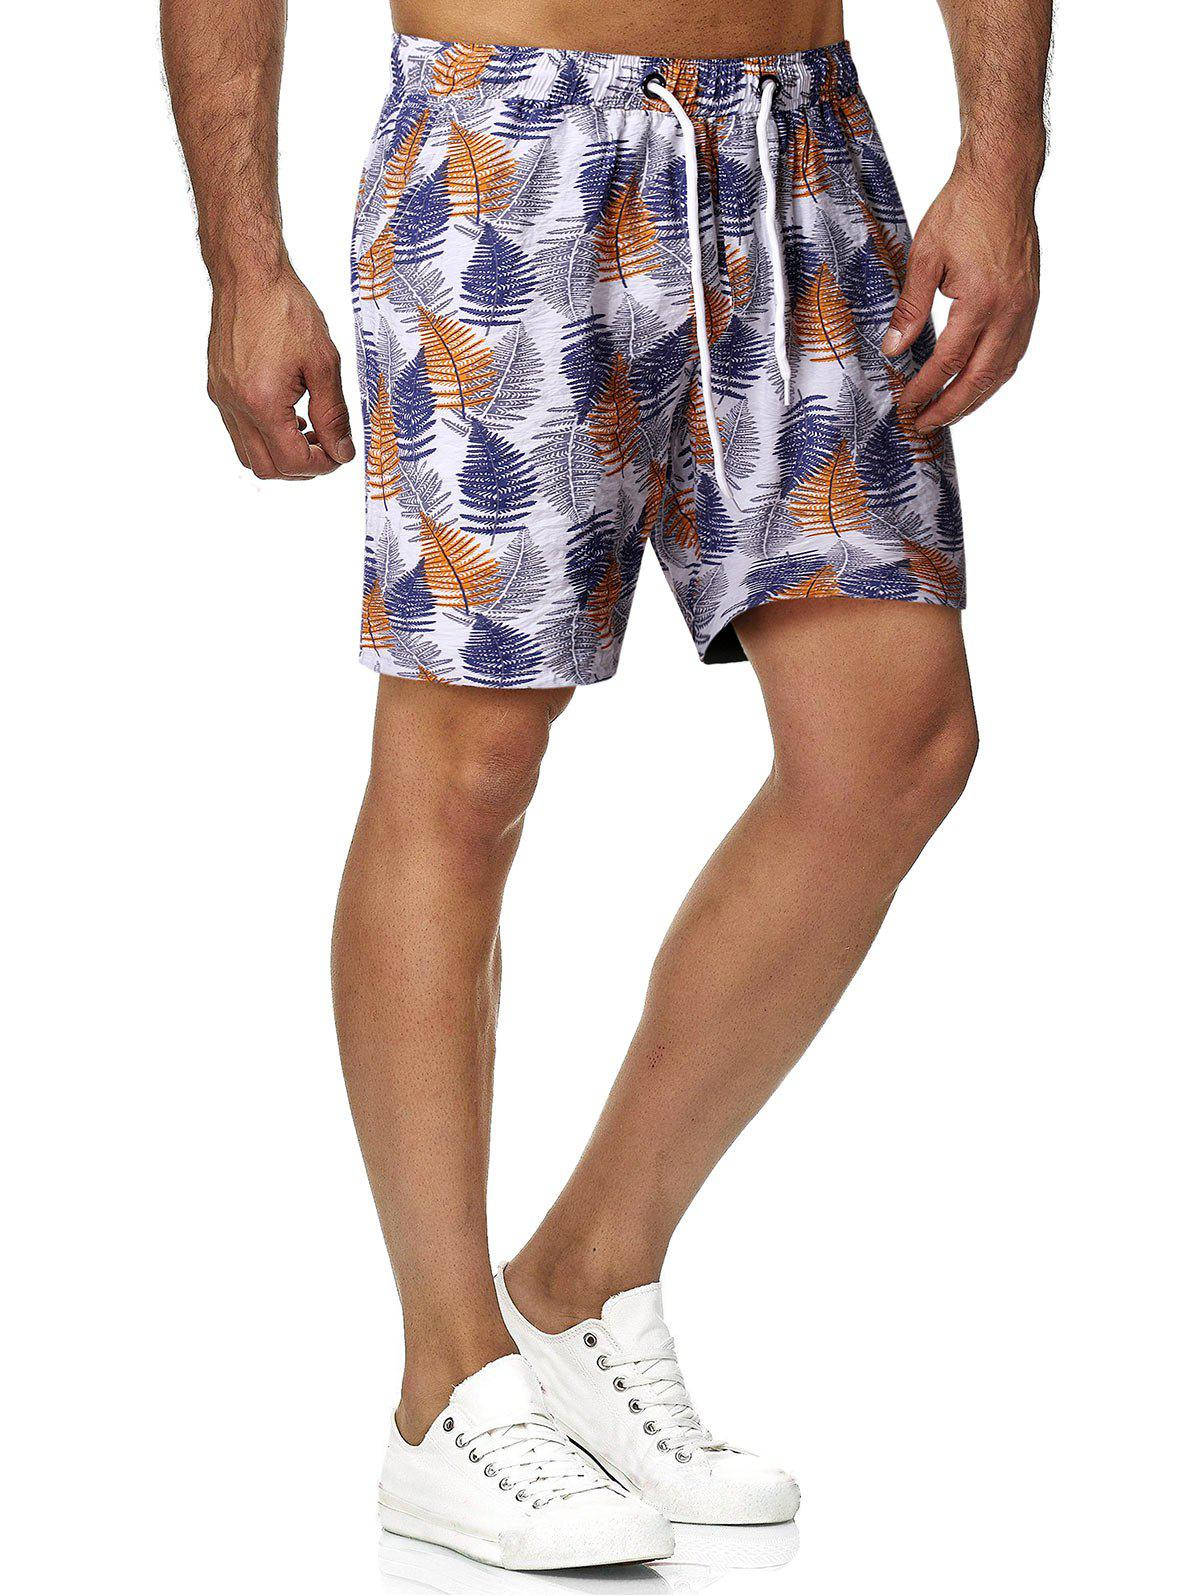 Leaves Print Drawstring Beach Shorts - multicolor 2XL